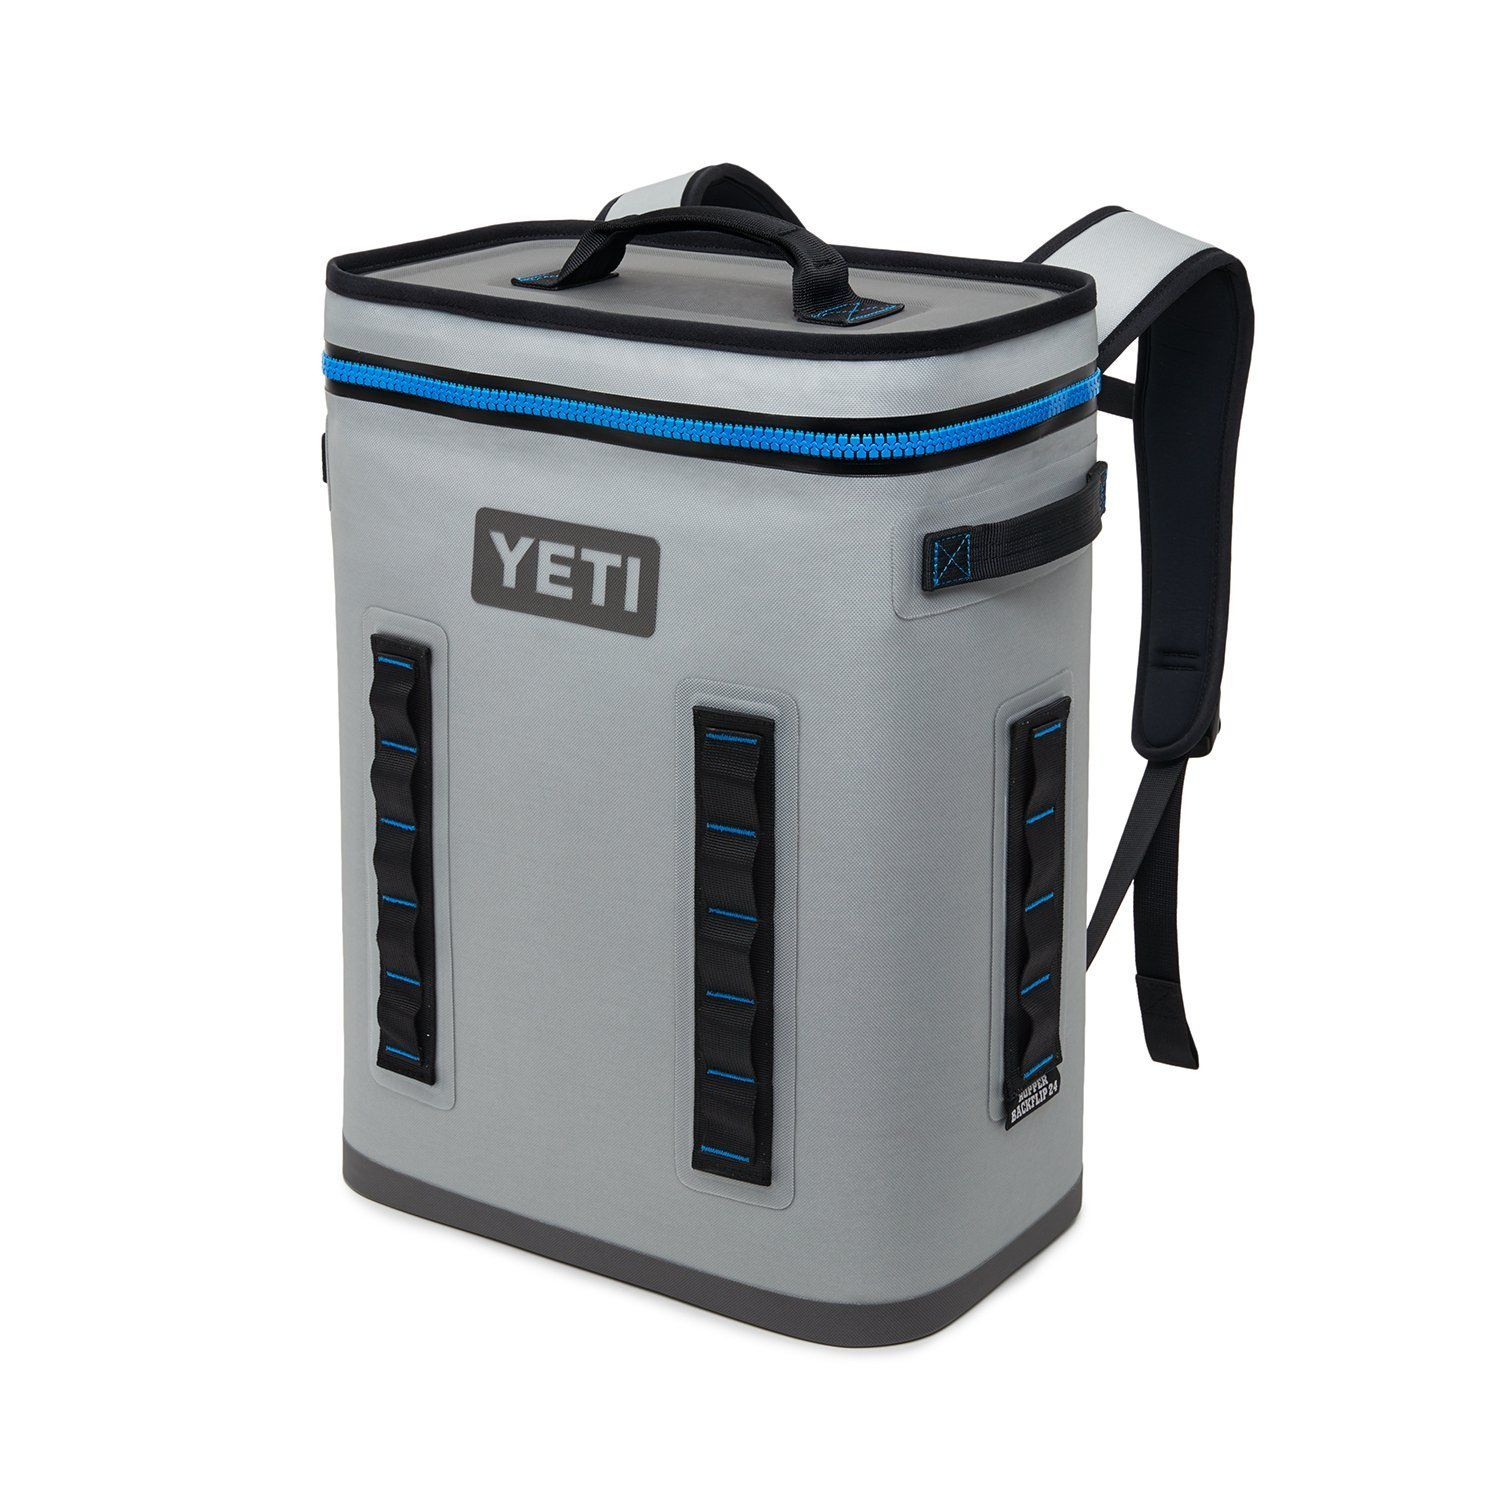 Pin By Paramjeet Monu On Black Friday Deals 2020 In 2020 Soft Sided Coolers Soft Cooler Yeti